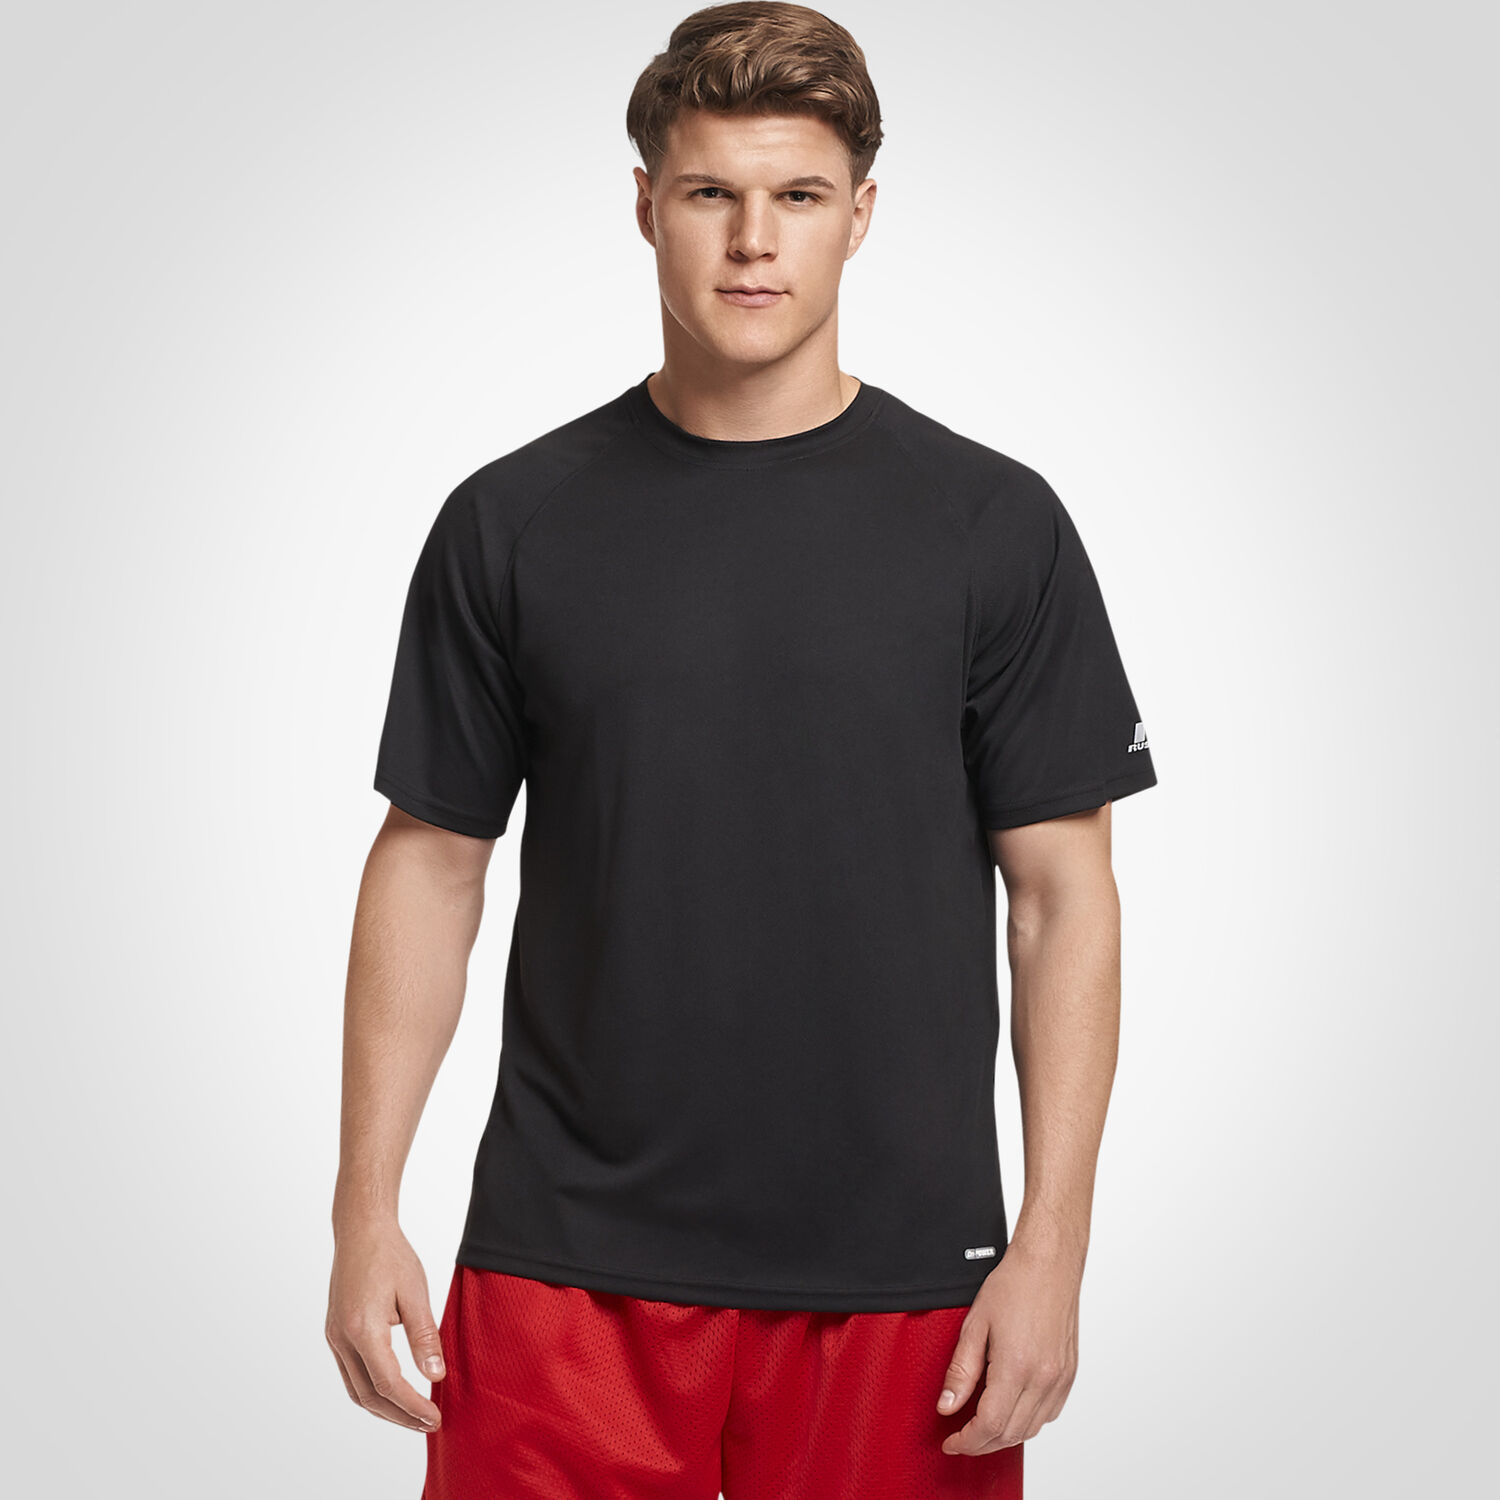 bc89687a Men's Dri-Power® Mesh Performance T-Shirt - Russell US | Russell ...